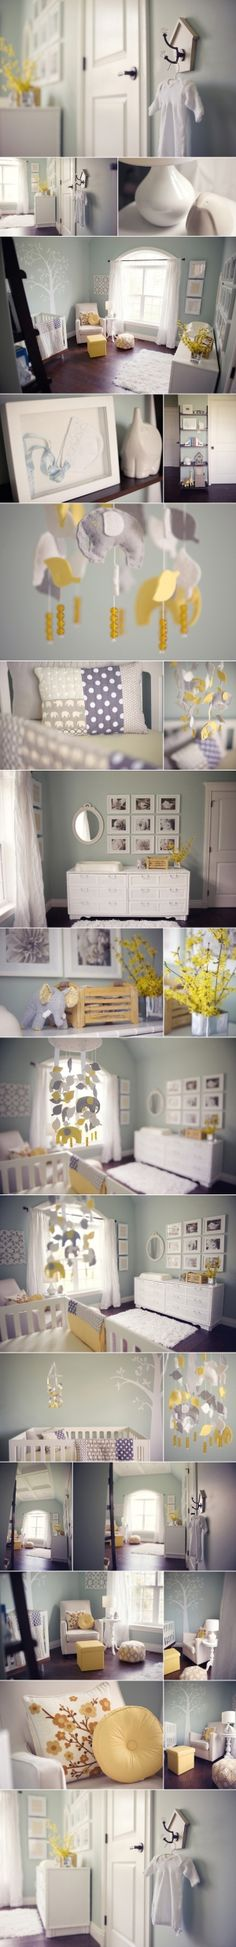 I love the blue walls,  yellow and gray accents,  and white furniture.  So fresh and adorable!